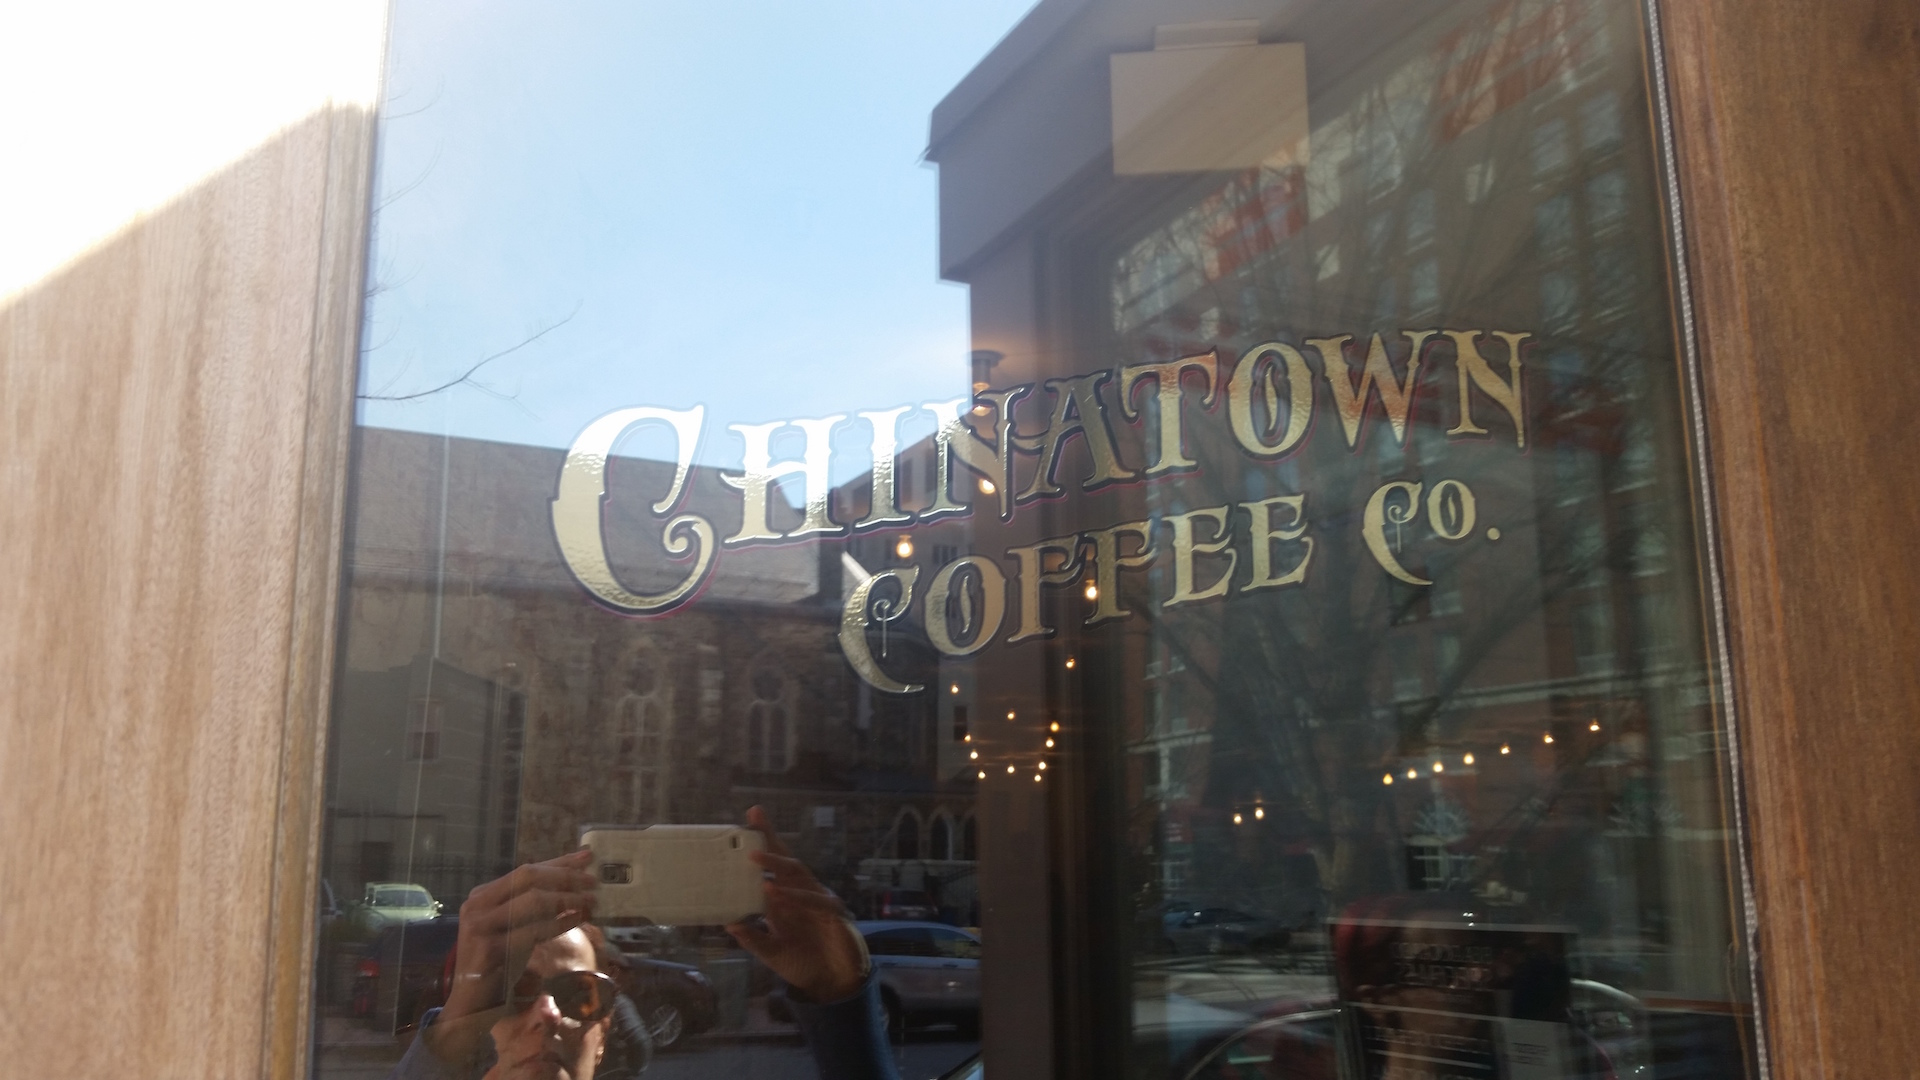 Chinatown-cofffe-window-sign-self-portrait